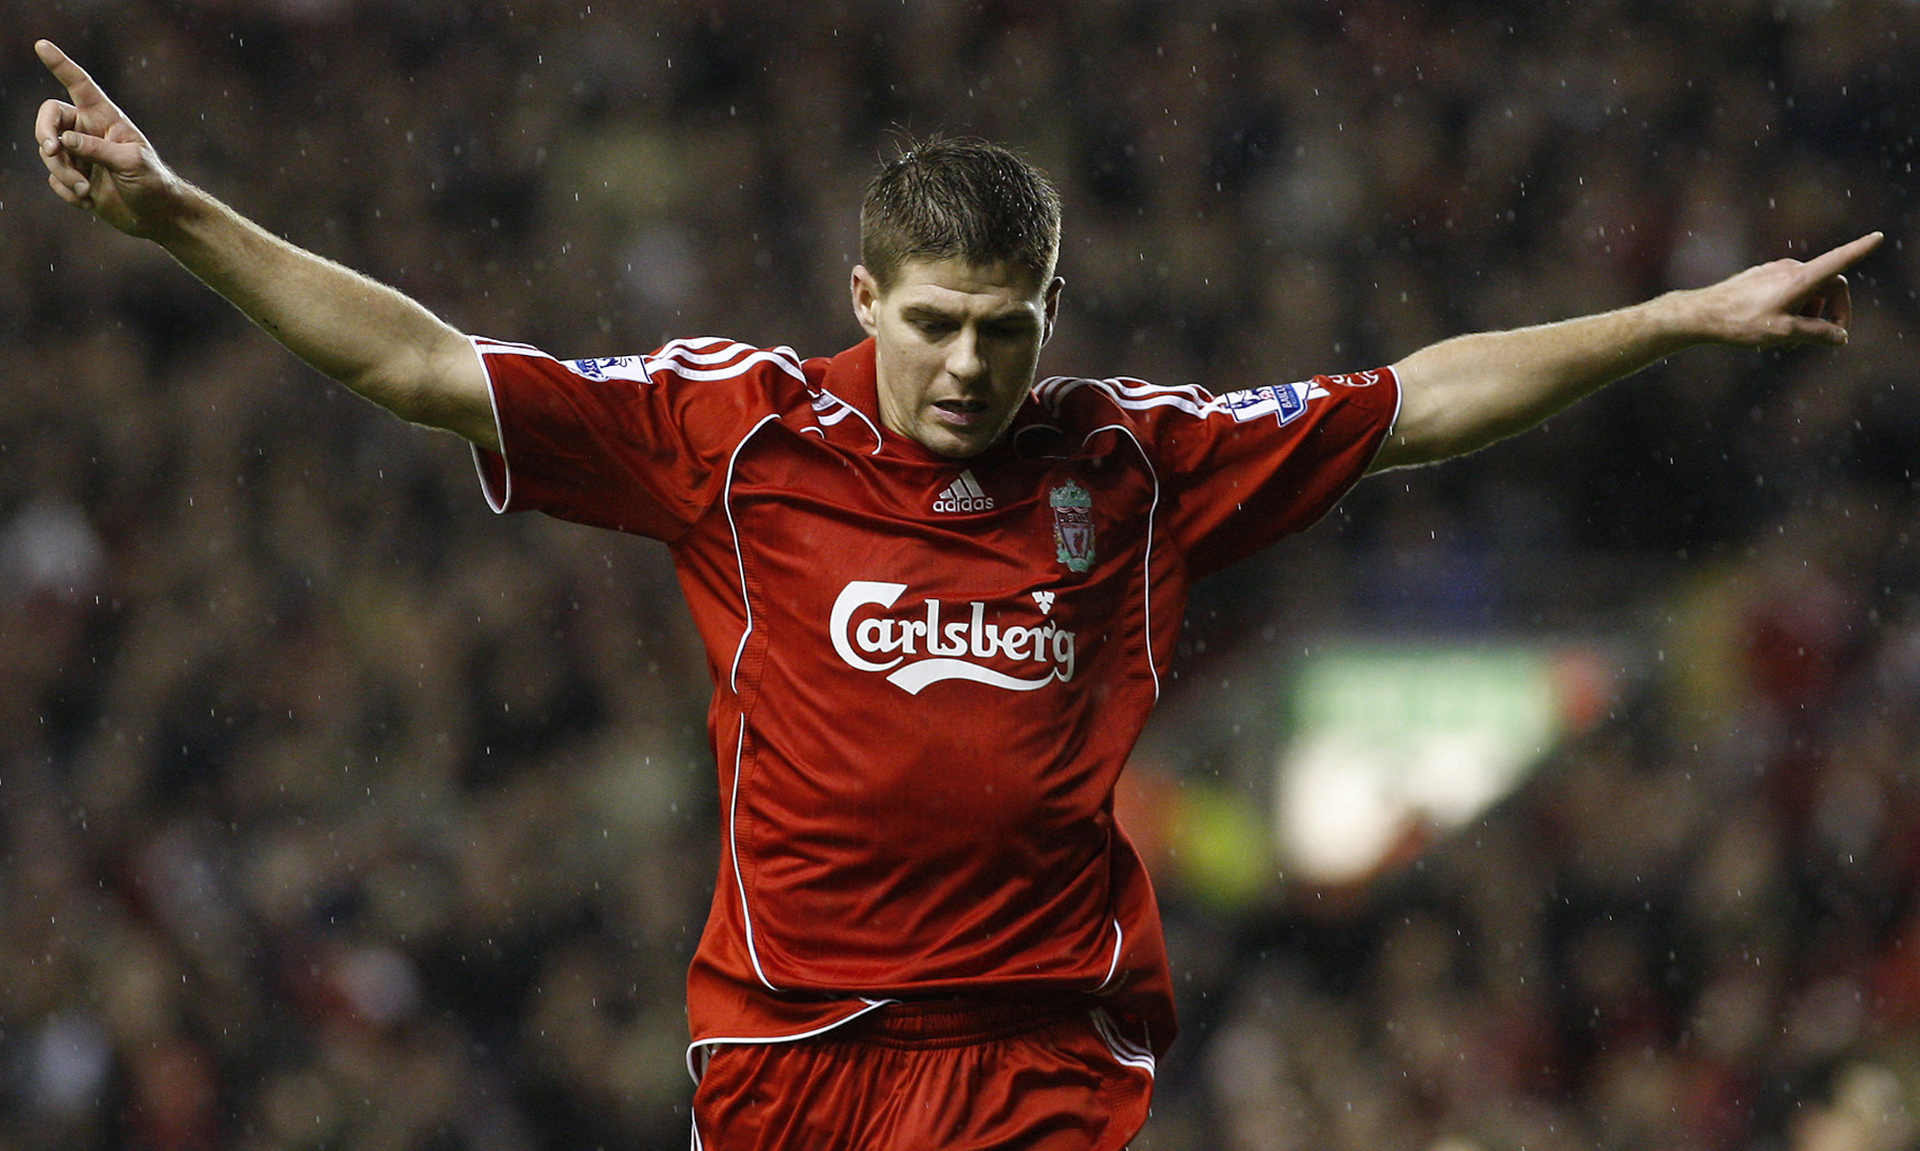 Steven Gerrard: Liverpool great retires after 19-year career